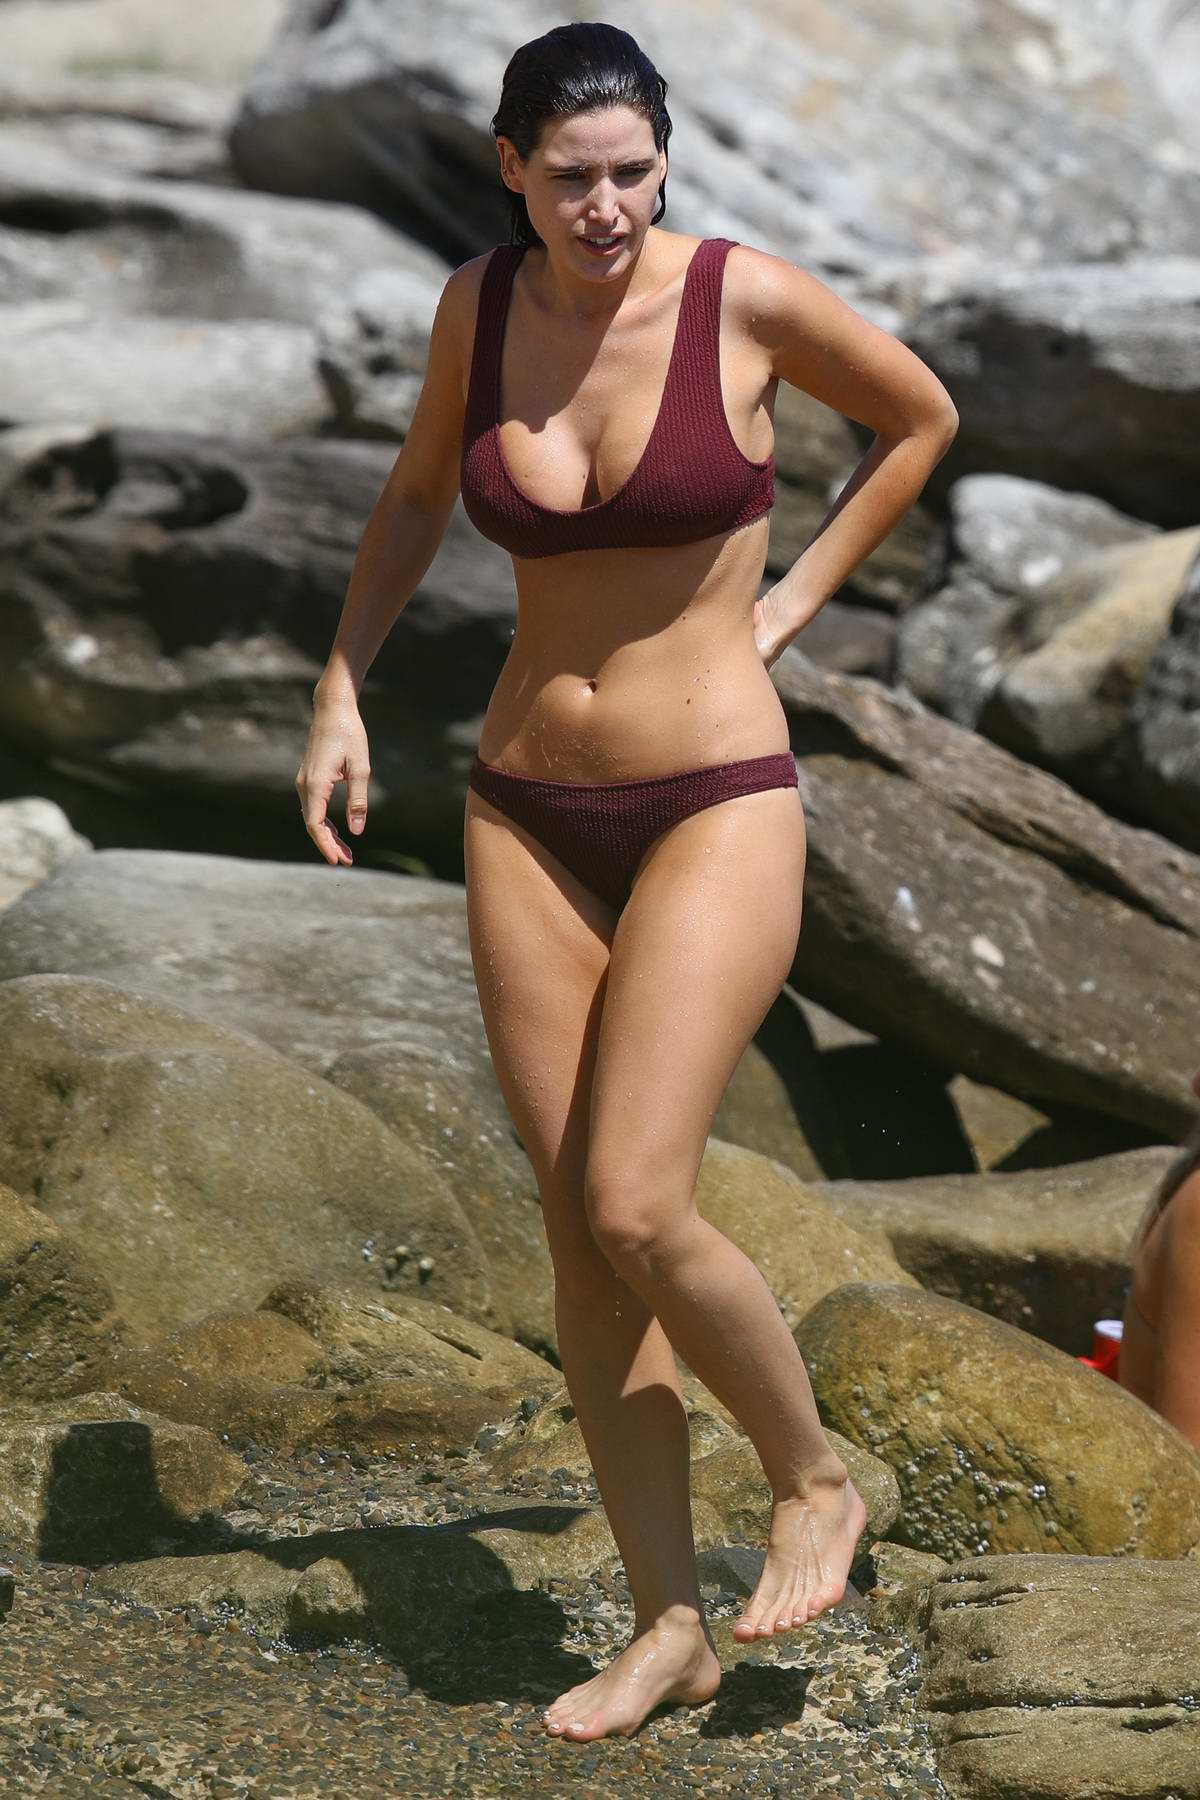 Tahnee Atkinson spotted in a bikini as she enjoys a swim at Bondi beach in Sydney, Australia